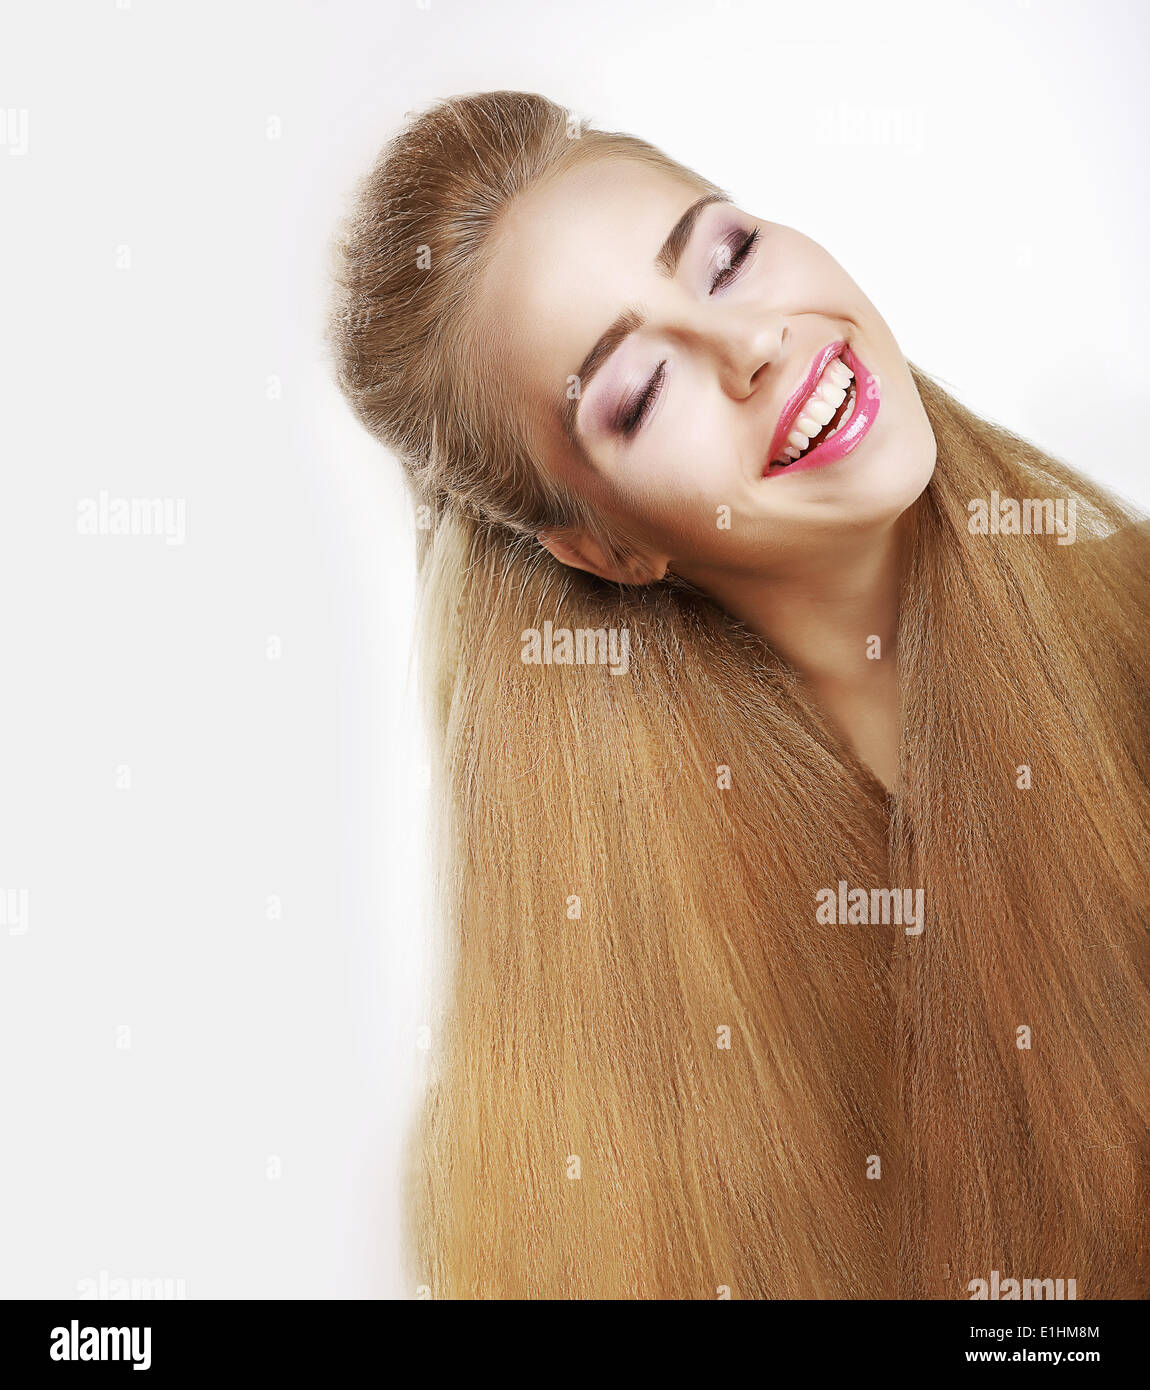 Sincere Smile. Jubilant Young Woman with Flowing Healthy Hairs. Pleasure - Stock Image